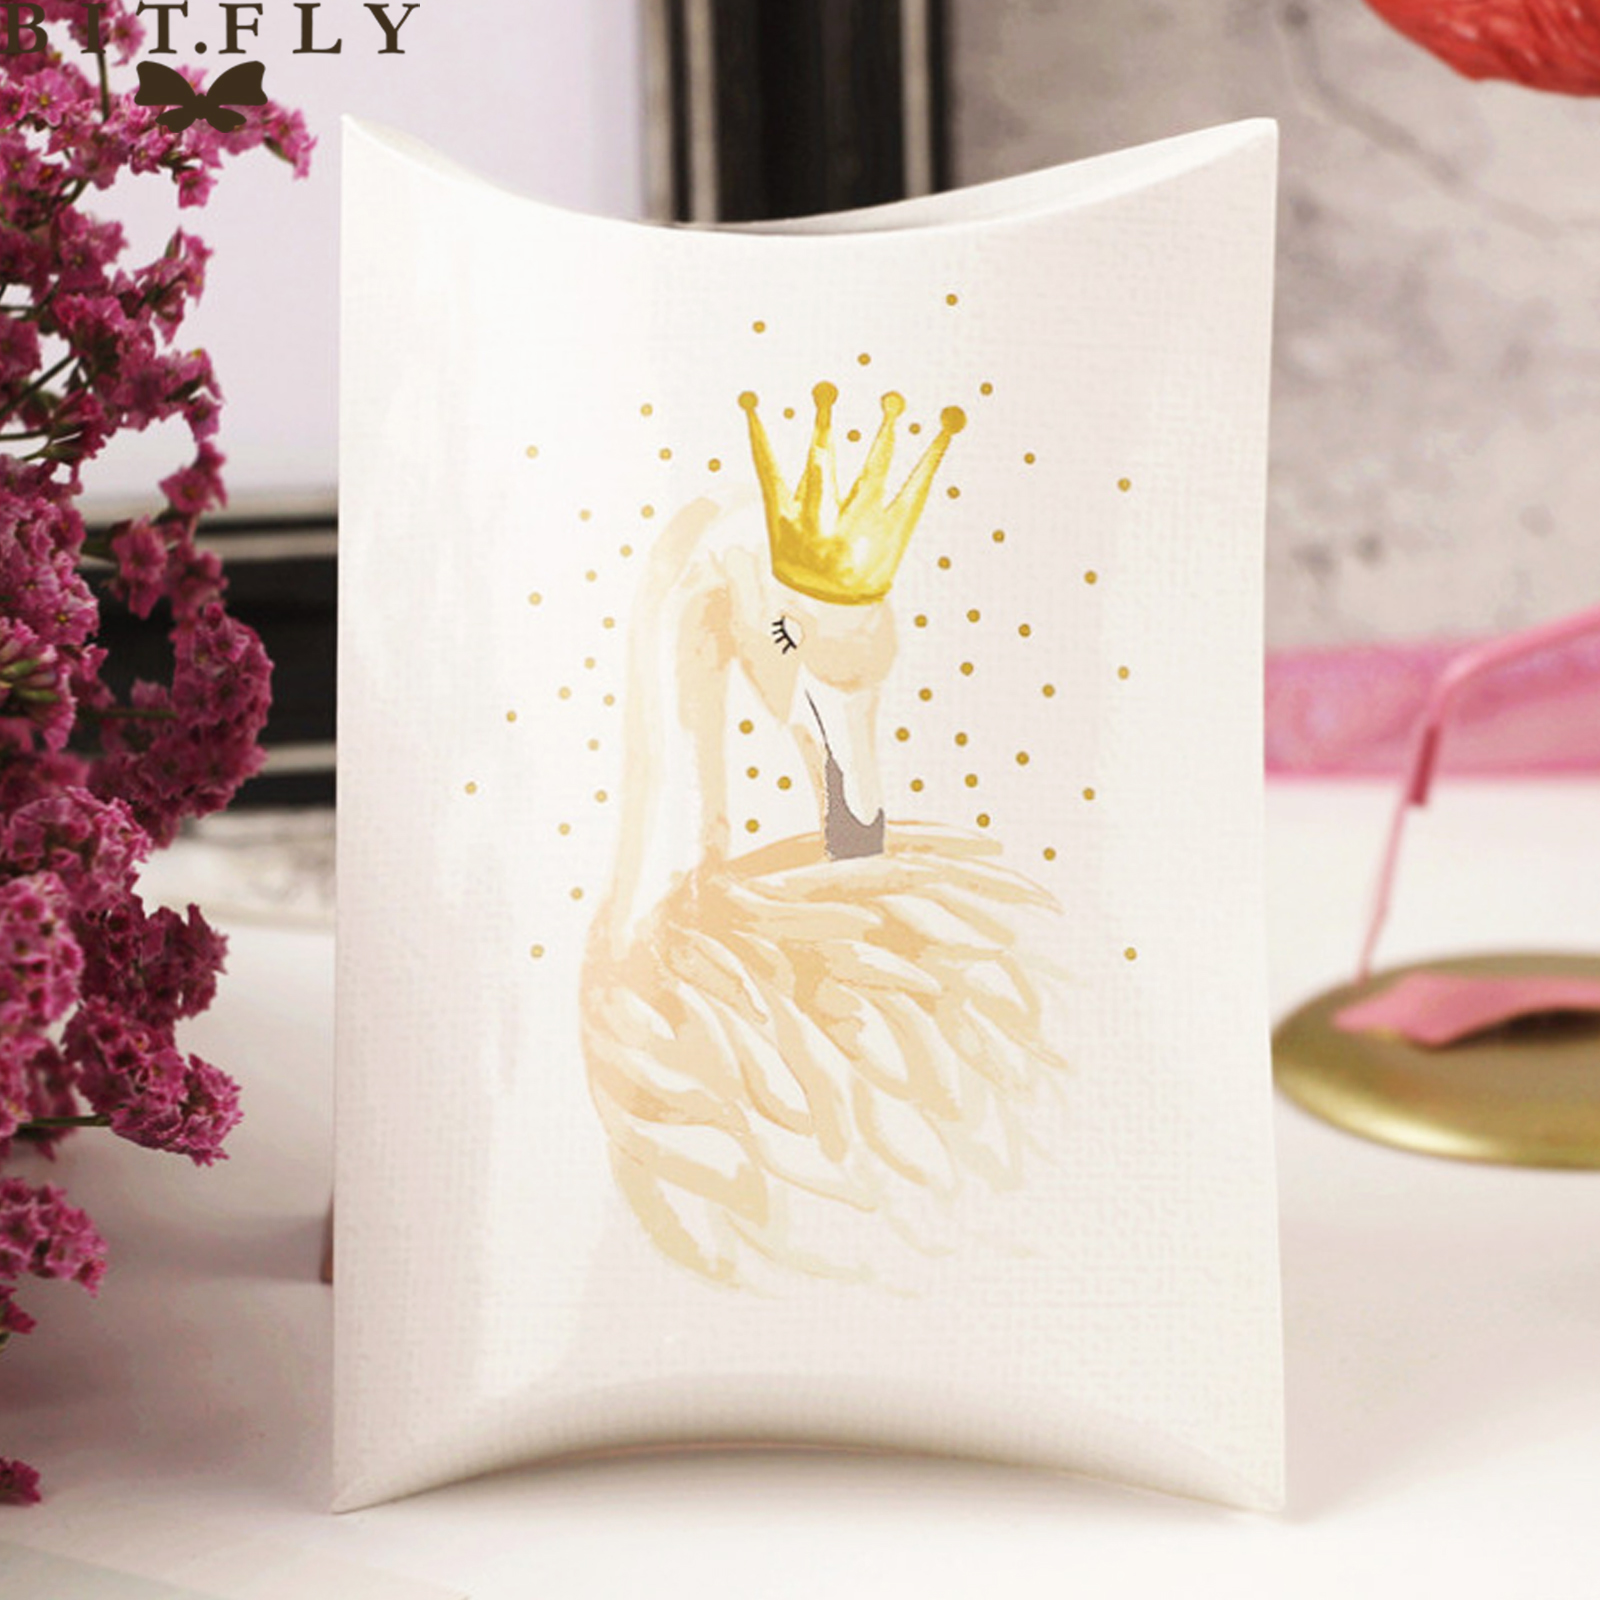 BIT.FLY 10pcs/lot Cute  Swan Paper Candy Box Girls Favor Lovely Balloon Pattern Gift Box Wedding Birthday Party DIY Decorations